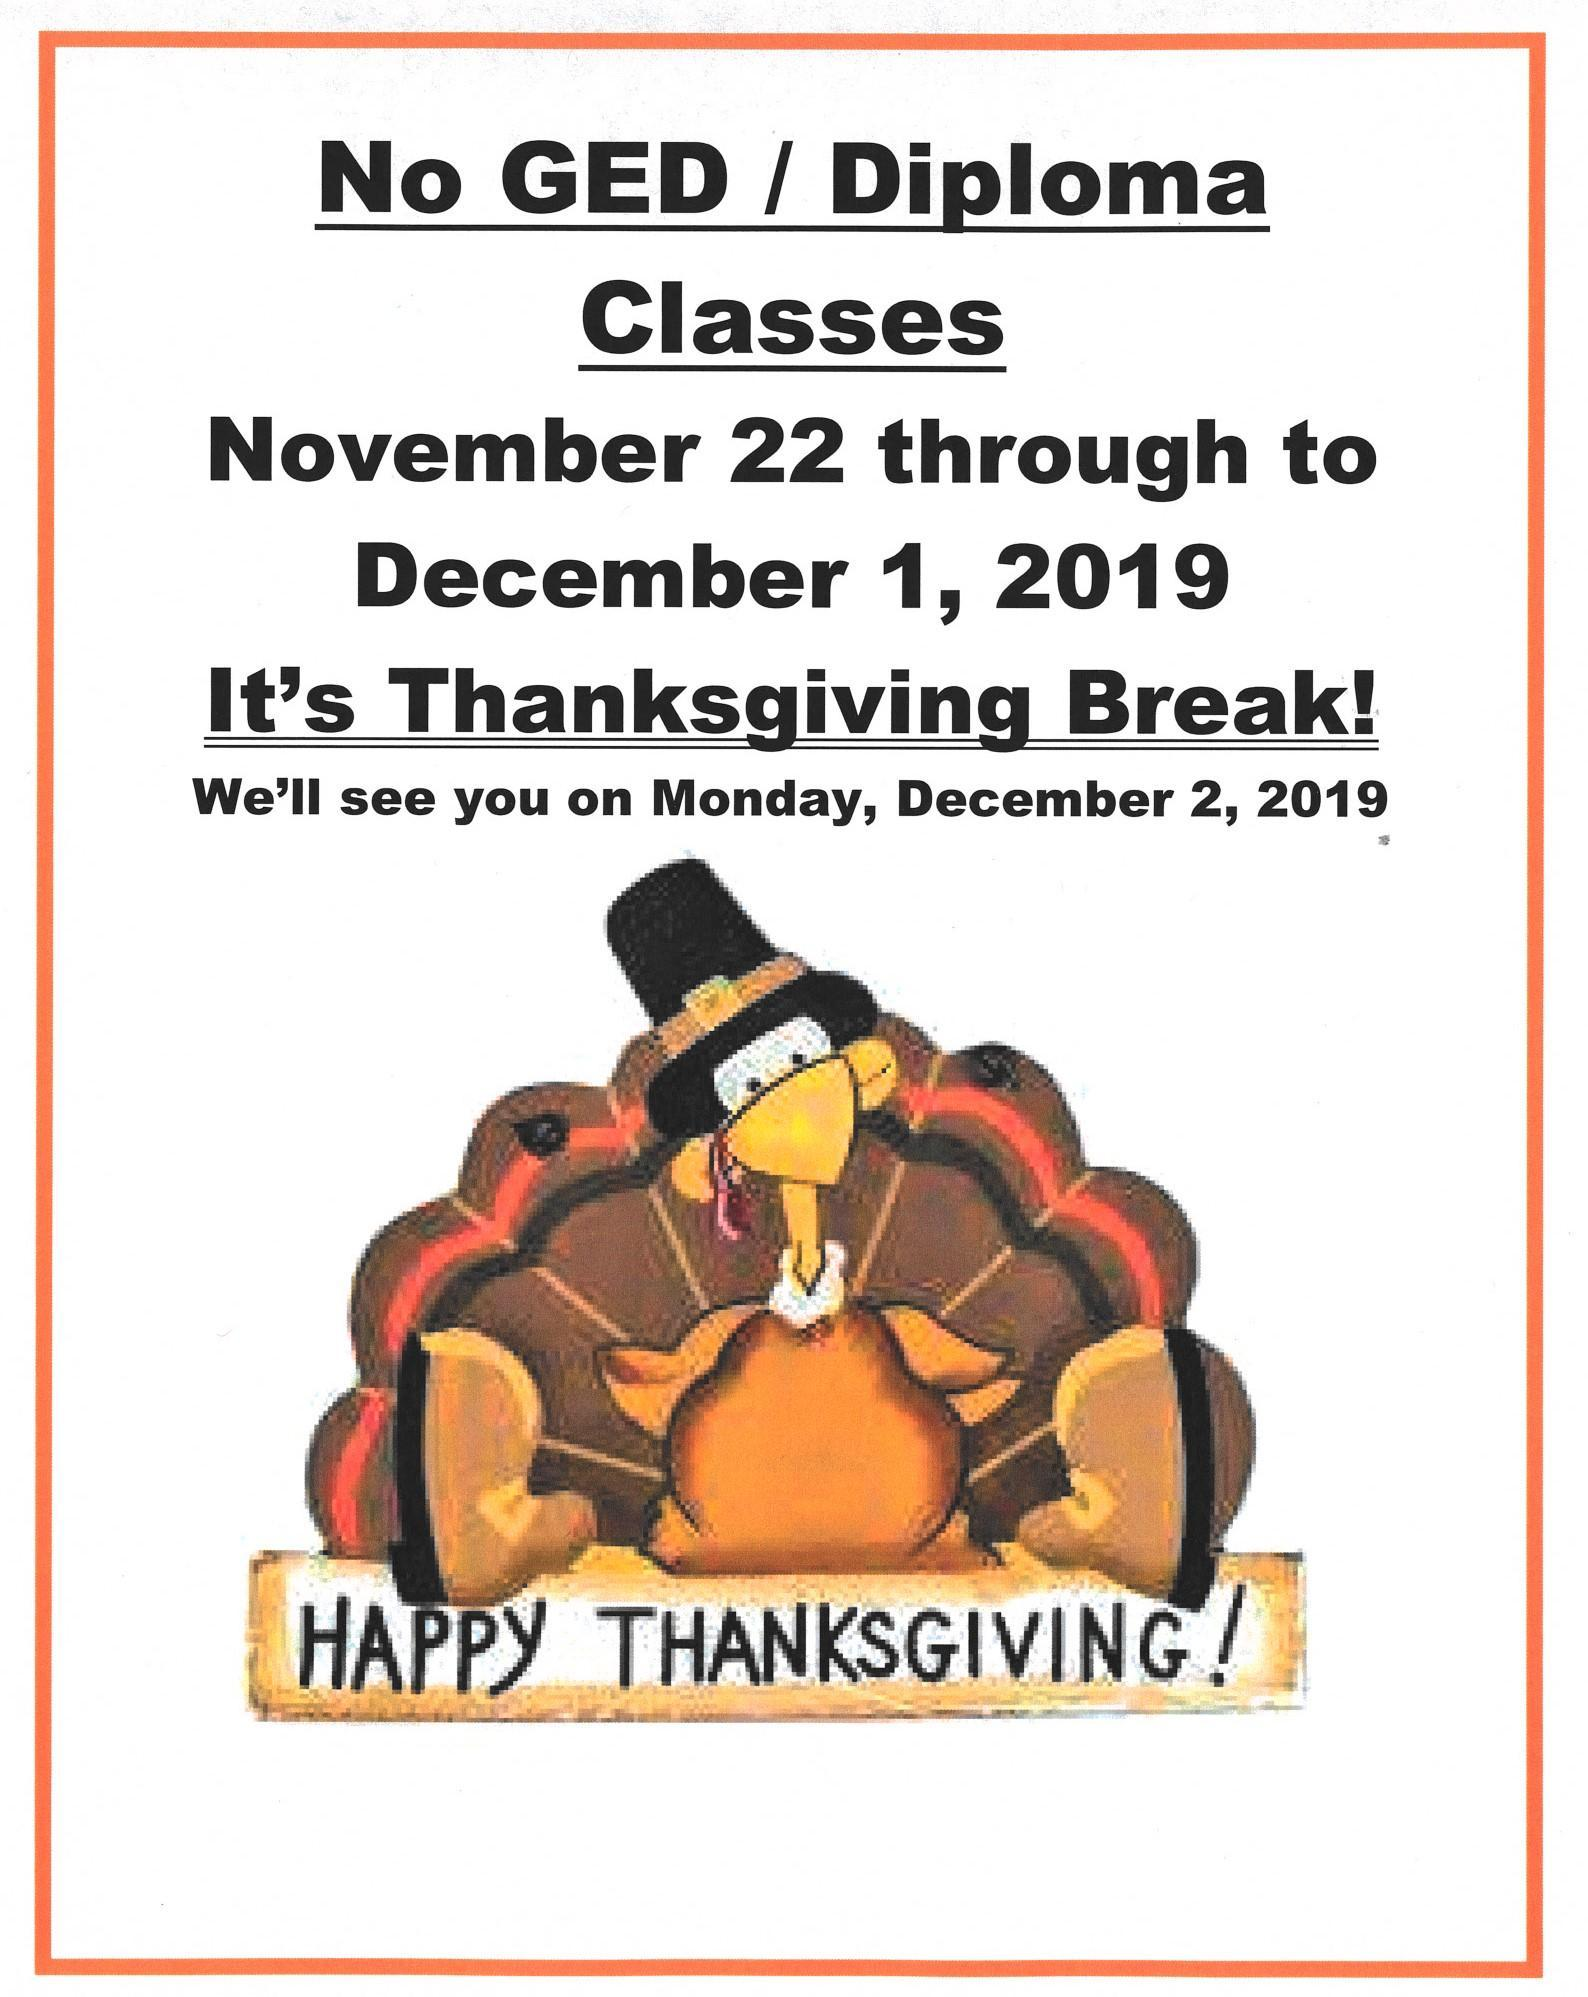 No GED / Diploma Classes November 22 to December 1.  We'll see you December 2 'Happy Thanksgiving!'poster